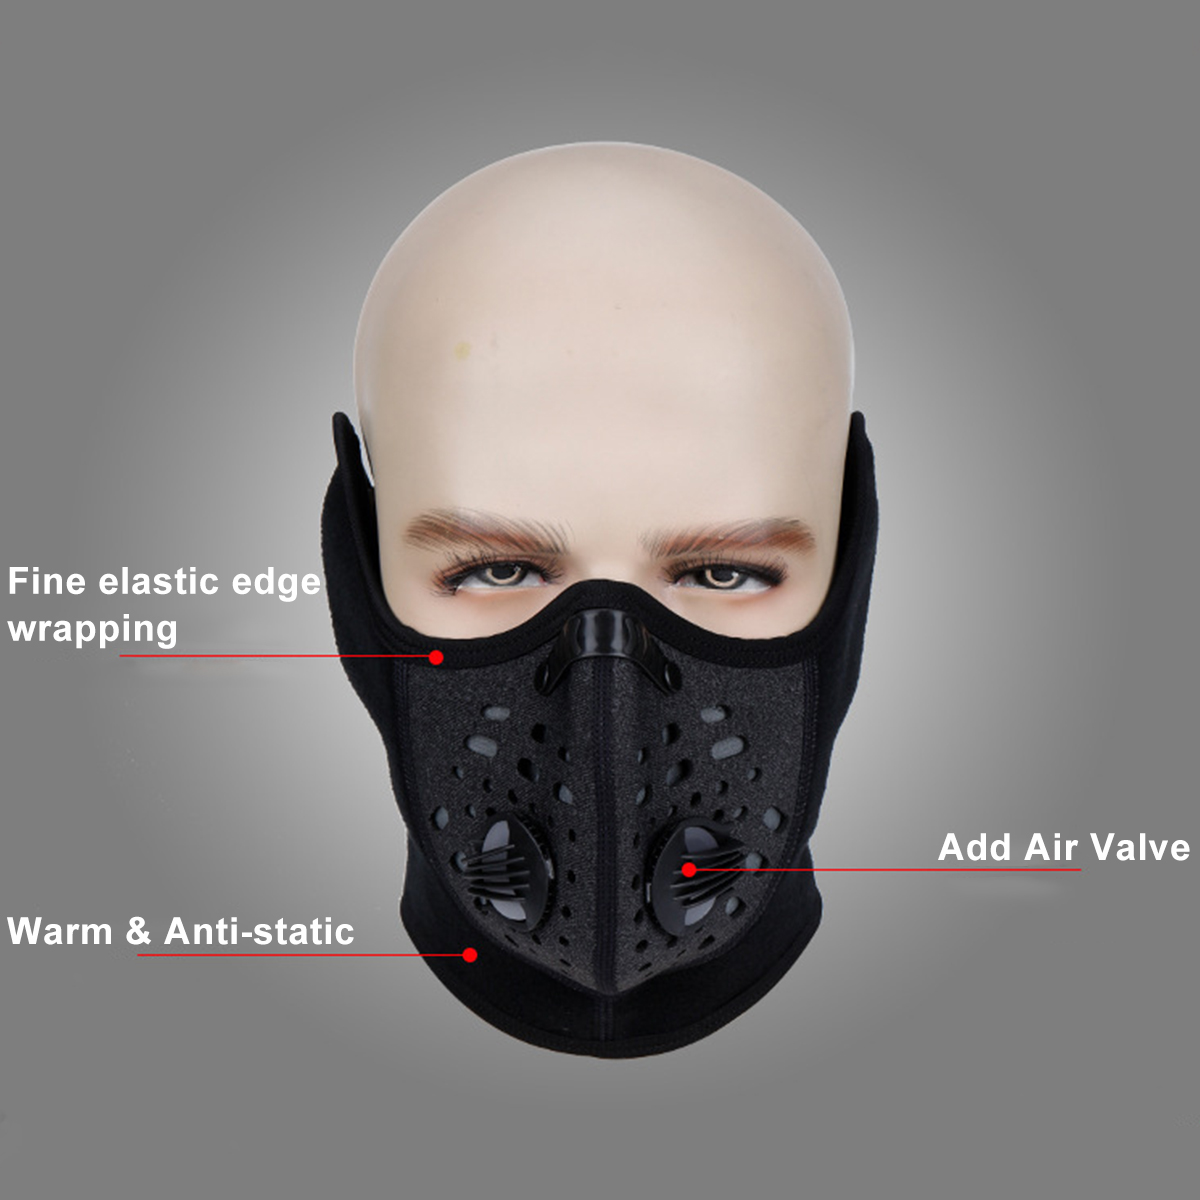 PM2.5 Black Gym Workout Fitness Mask Cardio Running Respirator Mask Dust Proof With Filtered Activated Carbon Biking Half Face